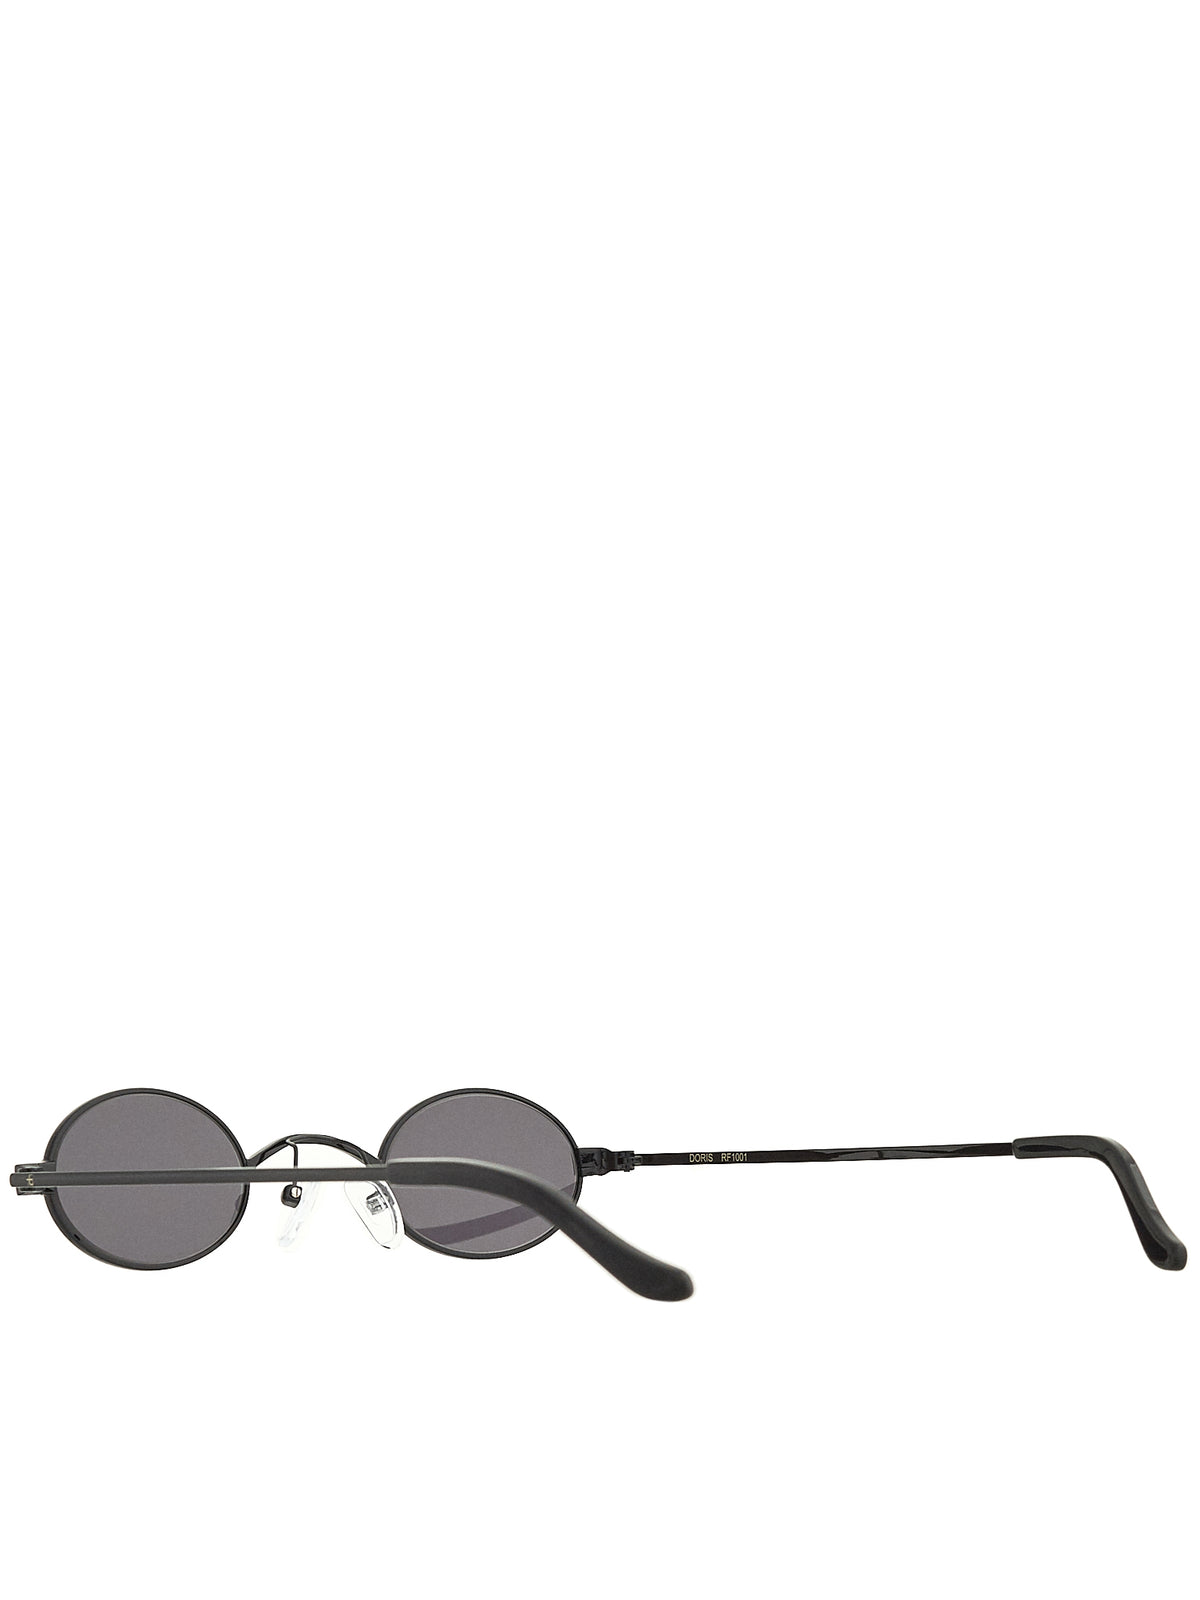 Roberi & Fraud Black Sunglasses - Hlorenzo Detail 2